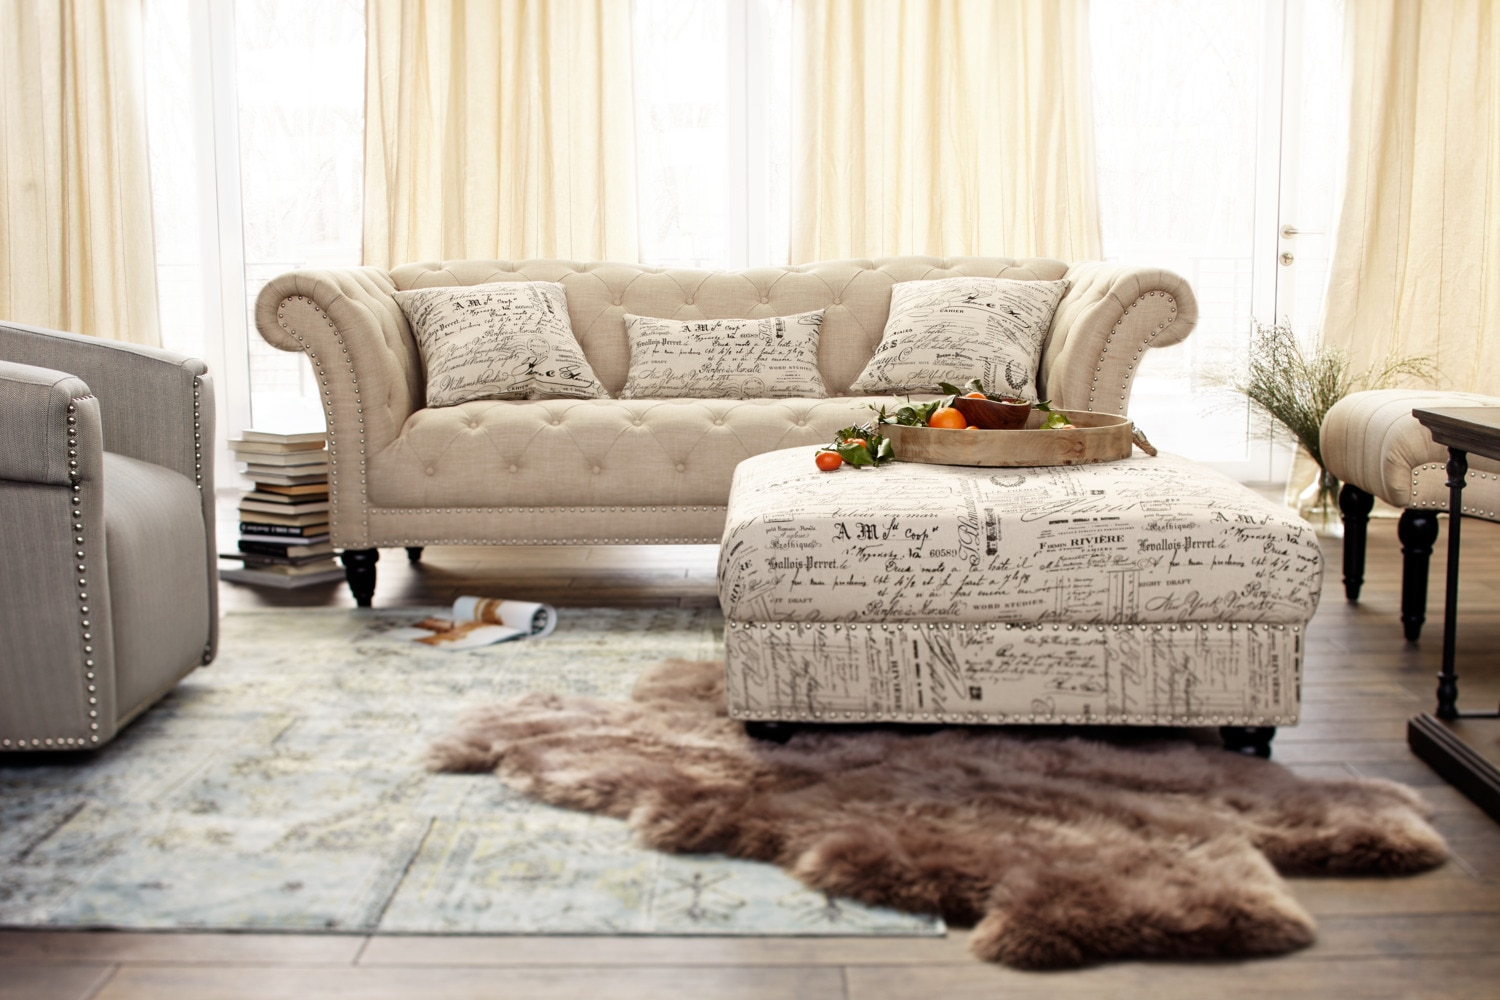 Sofa loveseat and armless chair set hover touch to zoom click to change image